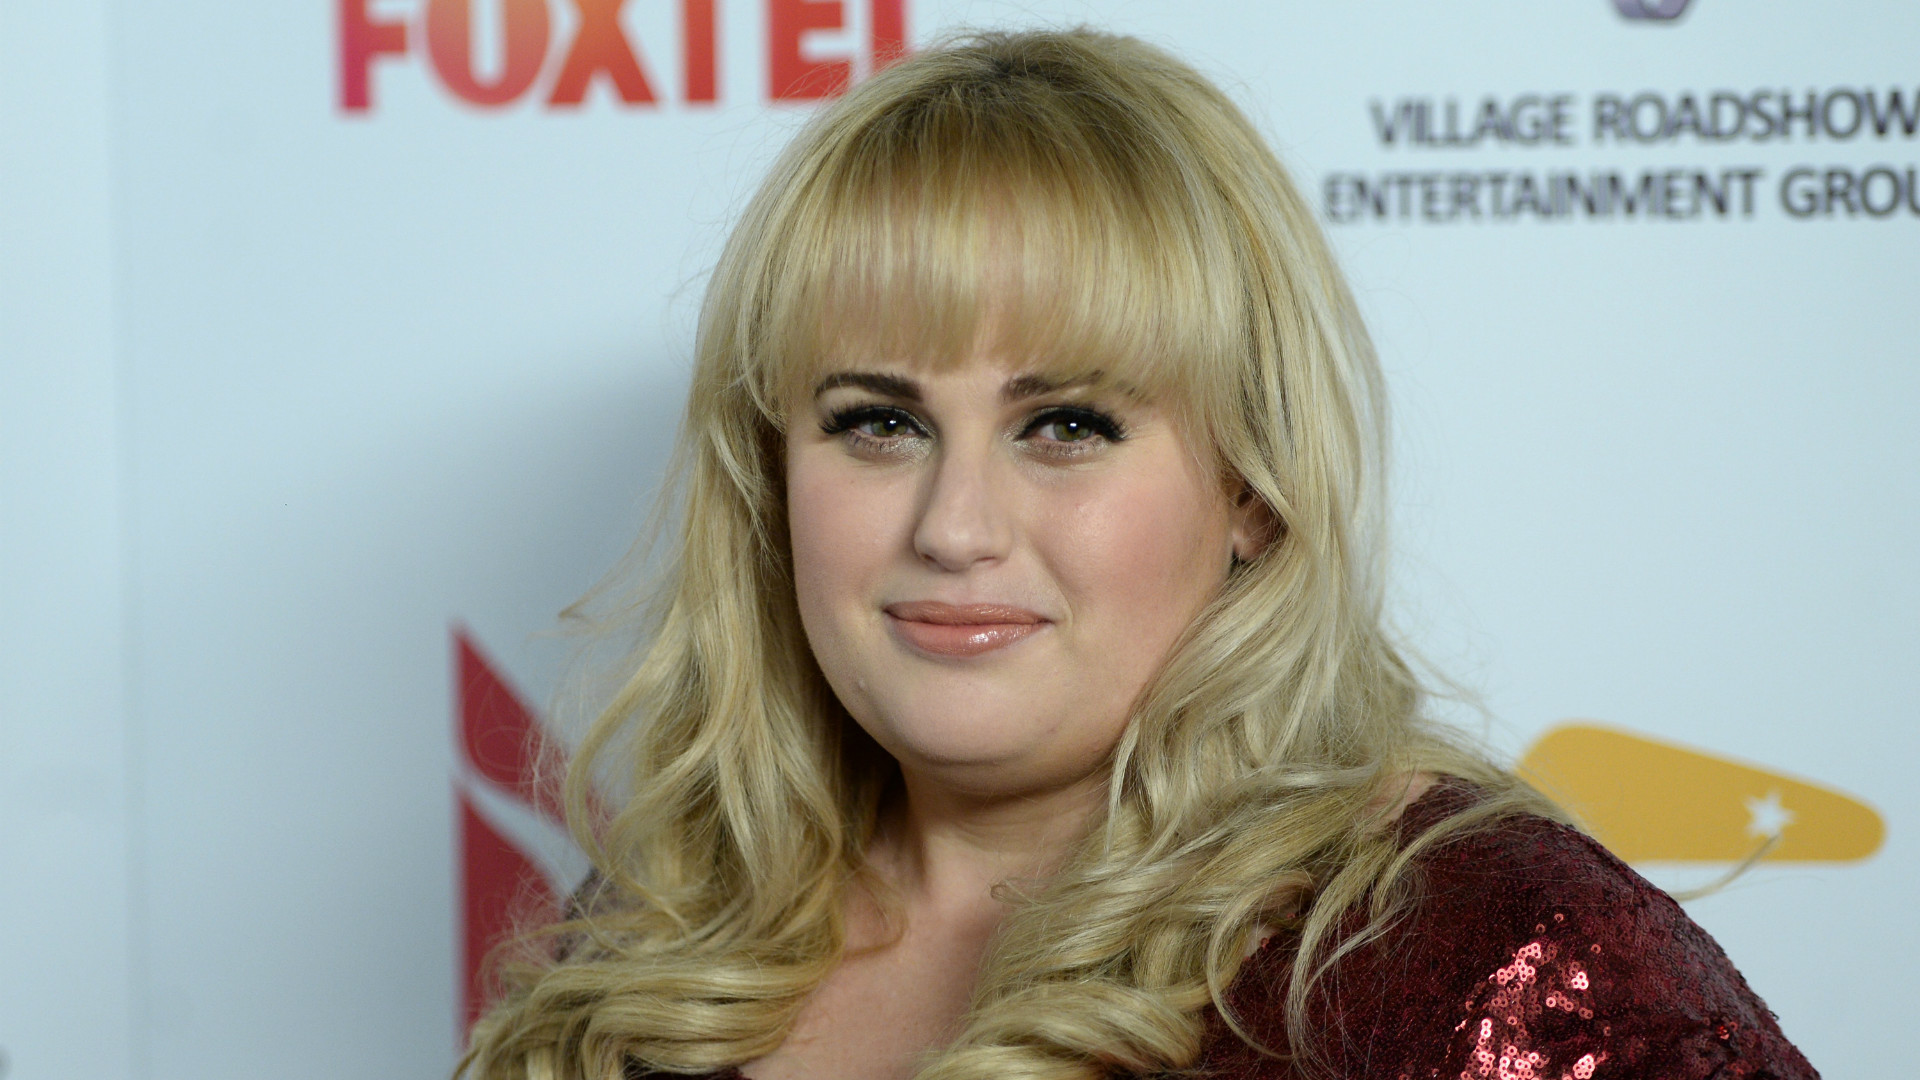 Pitch Perfect star Rebel Wilson